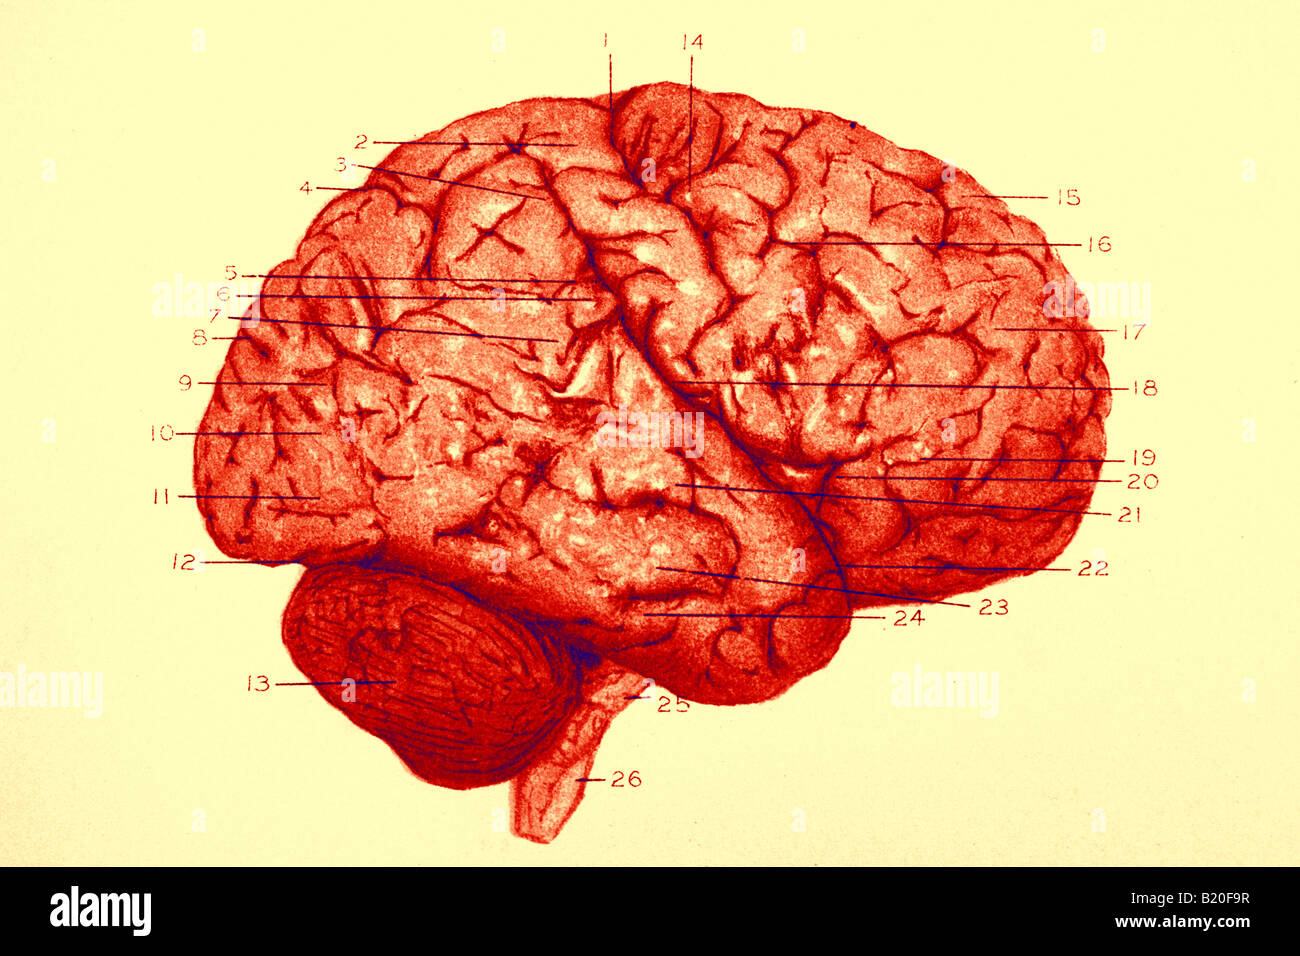 ILLUSTRATION DE L'HÉMISPHÈRE DROIT DU CERVEAU DE CIRCONVOLUTIONS Photo Stock